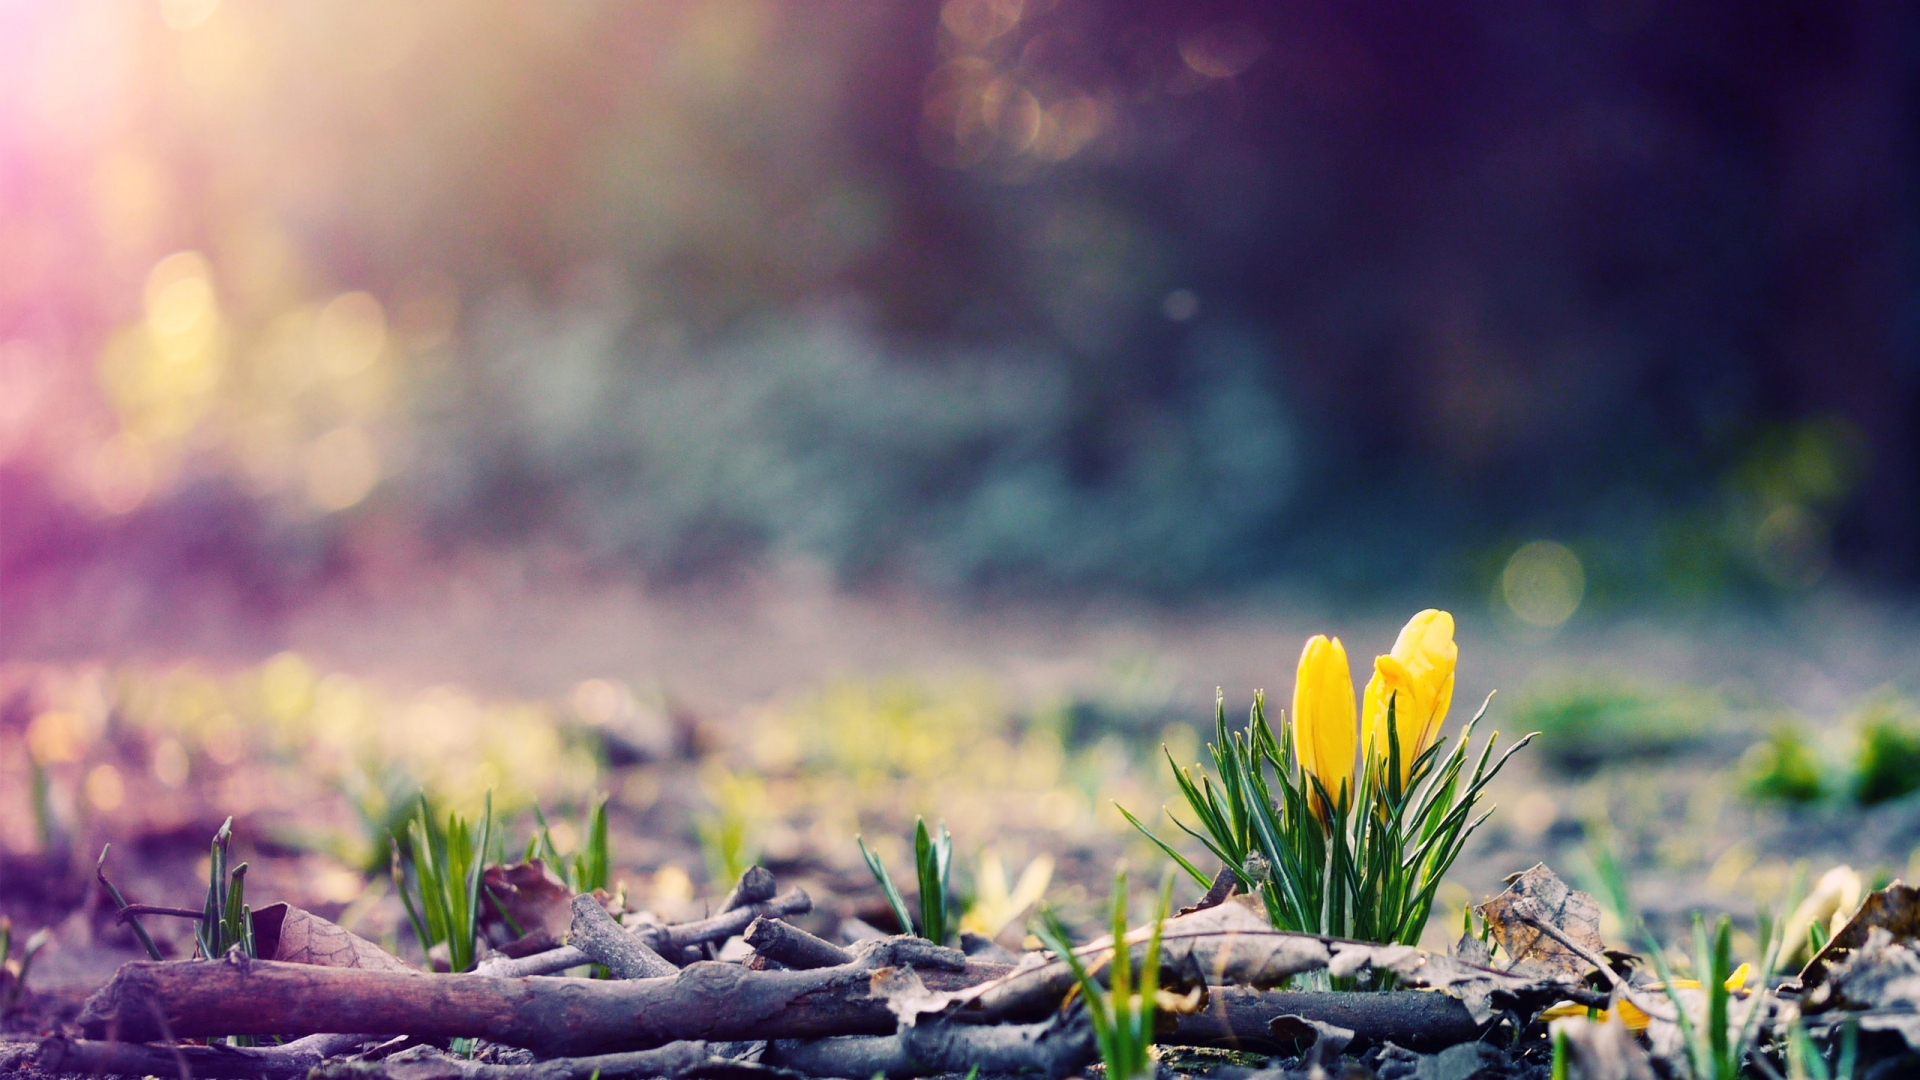 spring nature wallpapers 1080p - photo #23